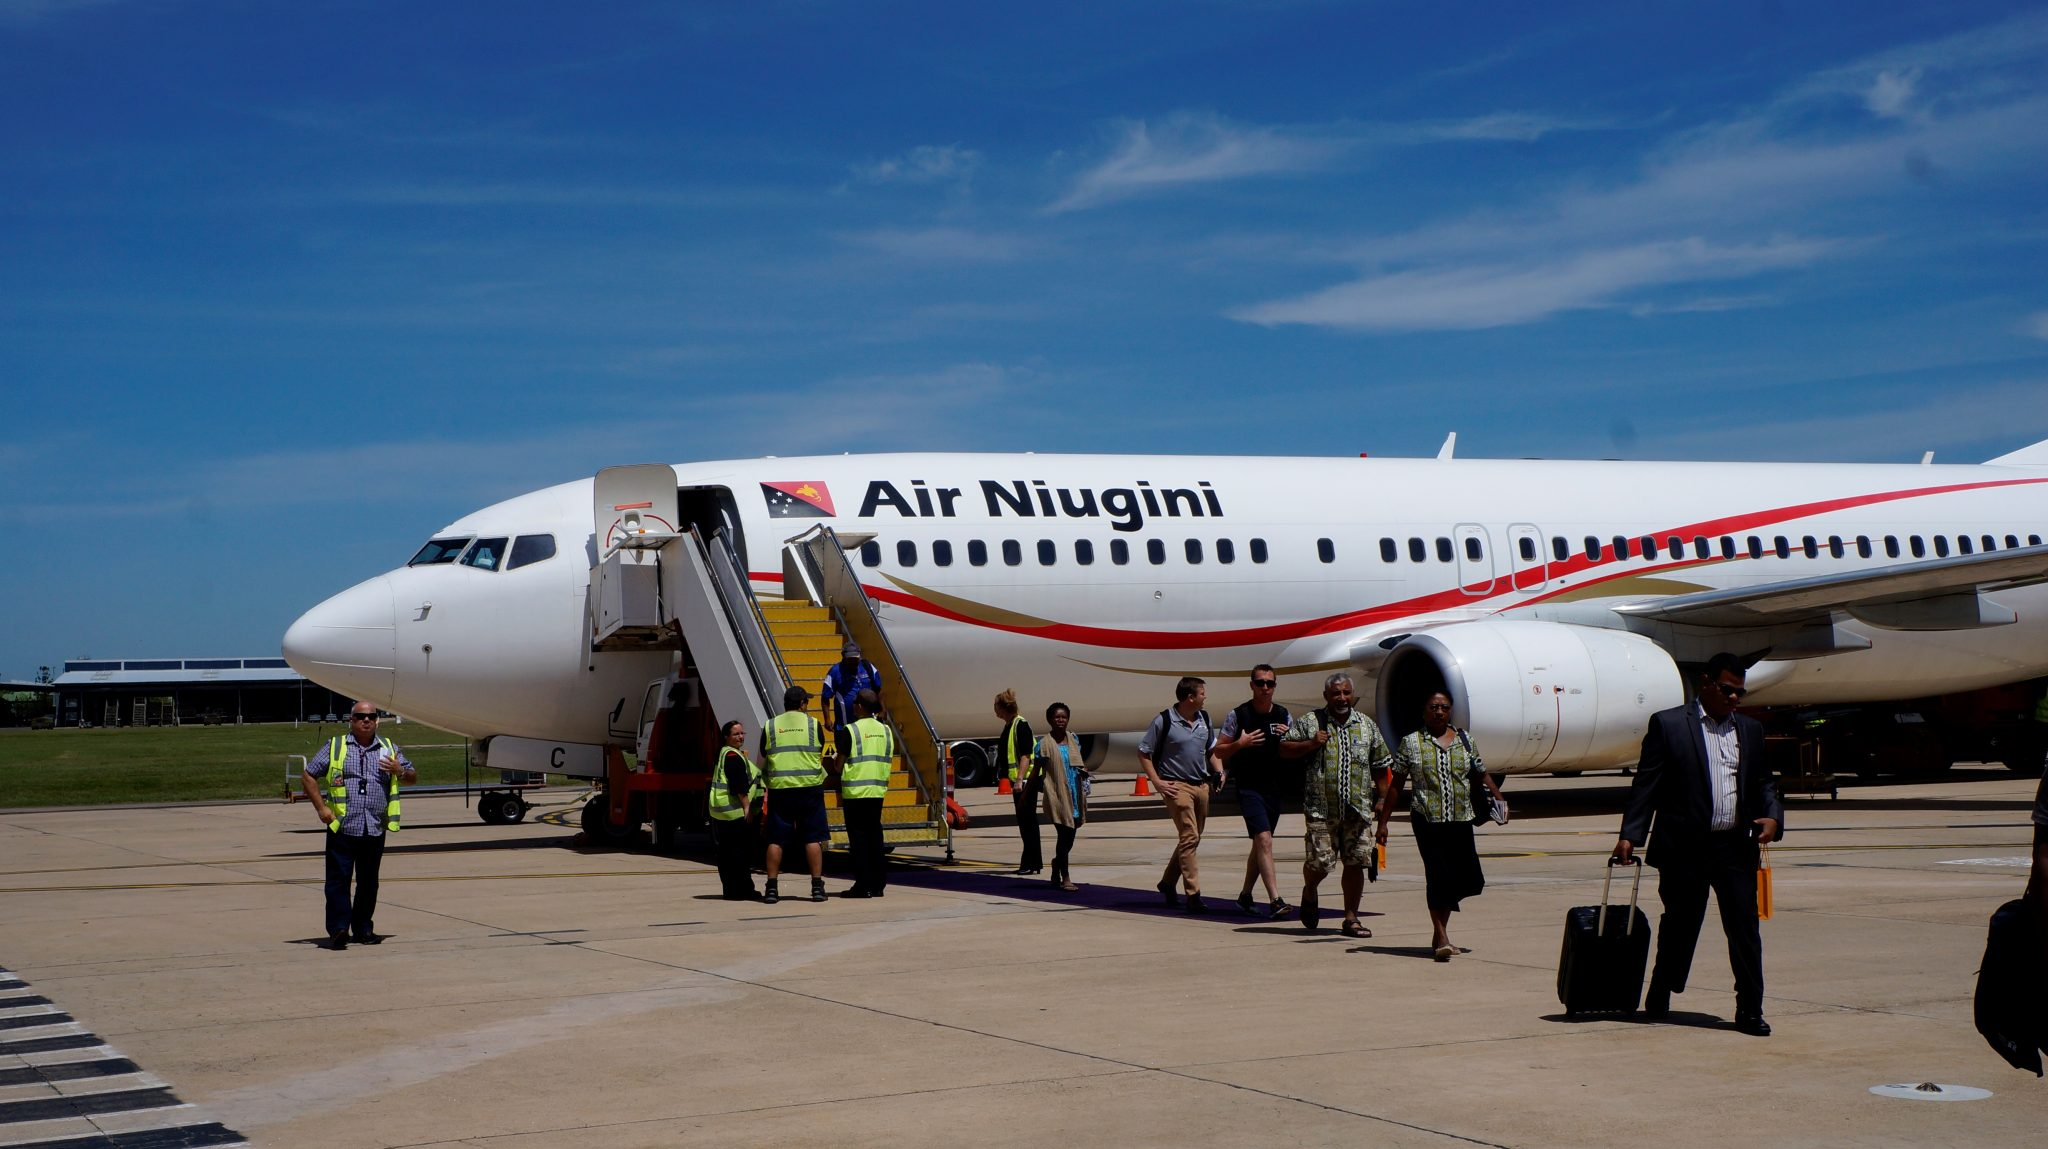 Air Niugini commence direct services to Townsville, Australia